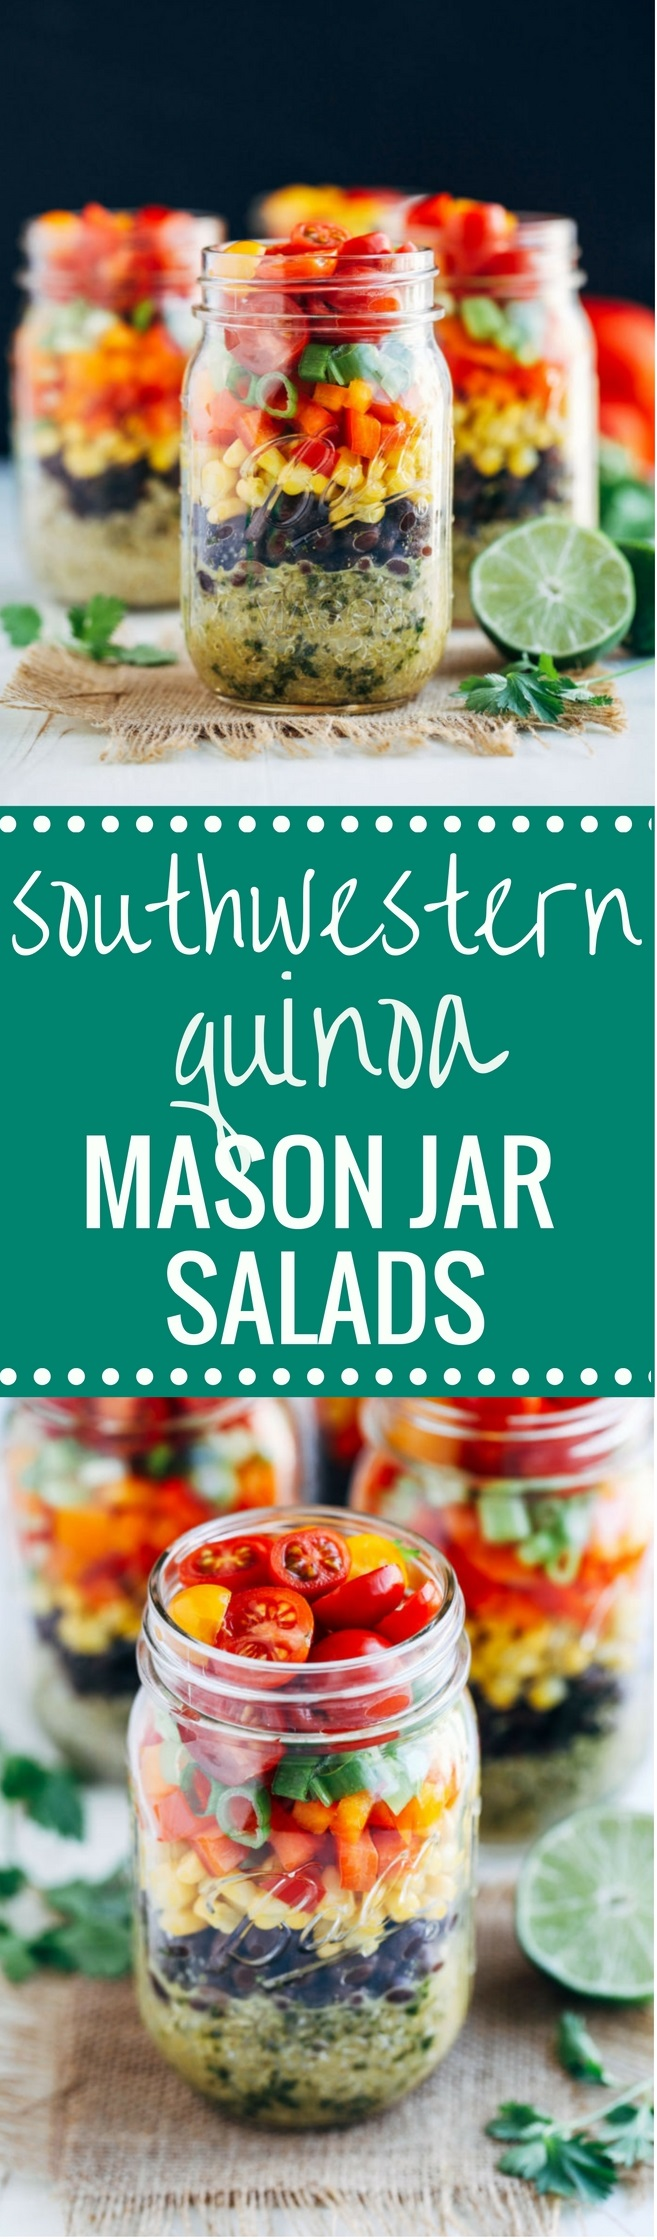 Southwestern Quinoa Mason Jar Salads made with a delicious cumin-lime dressing! Perfect to prep for healthy lunches!